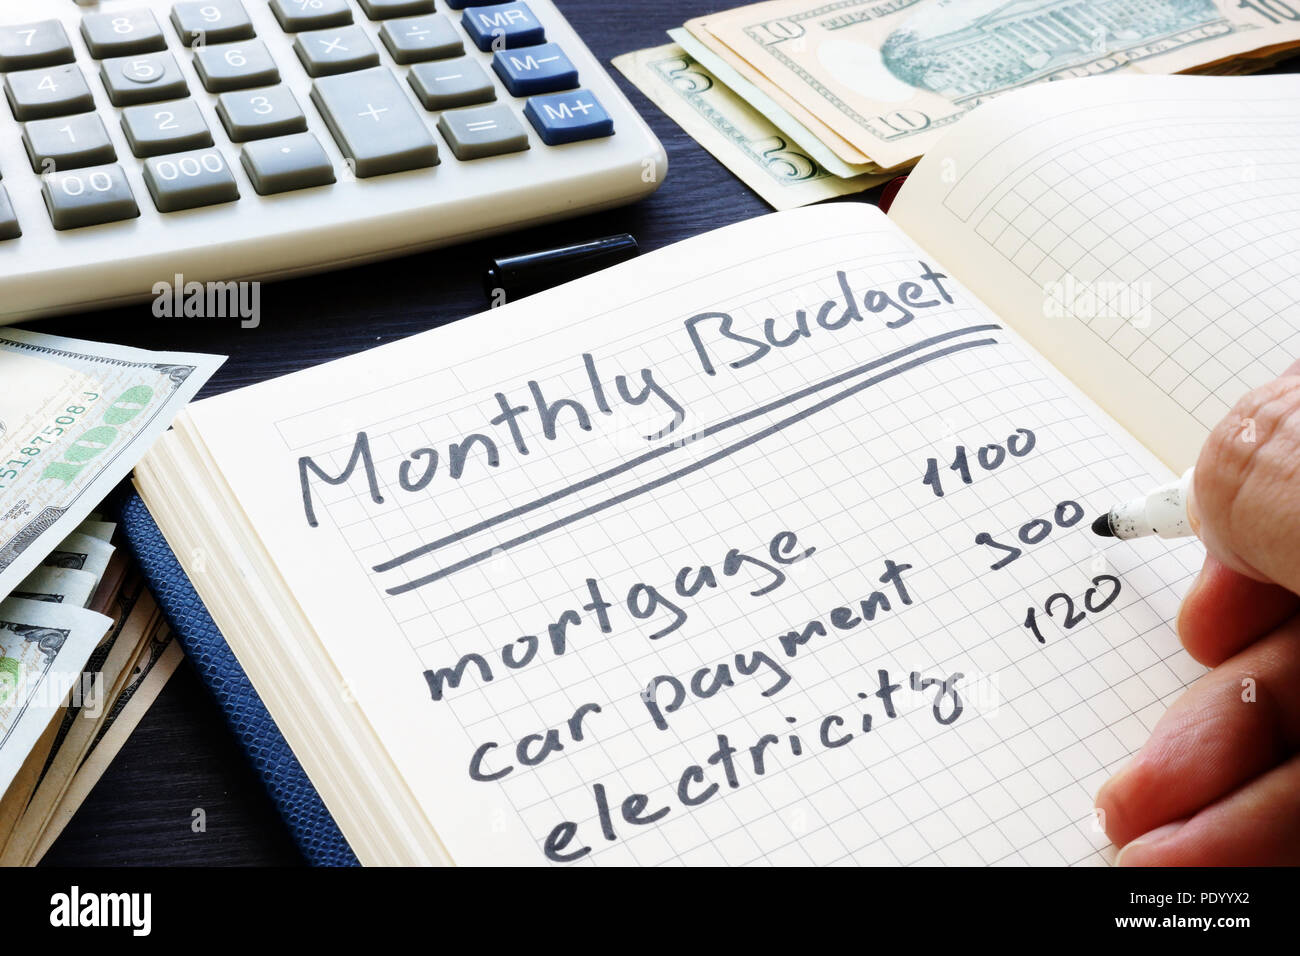 Budget Plan Stockfotos & Budget Plan Bilder - Alamy